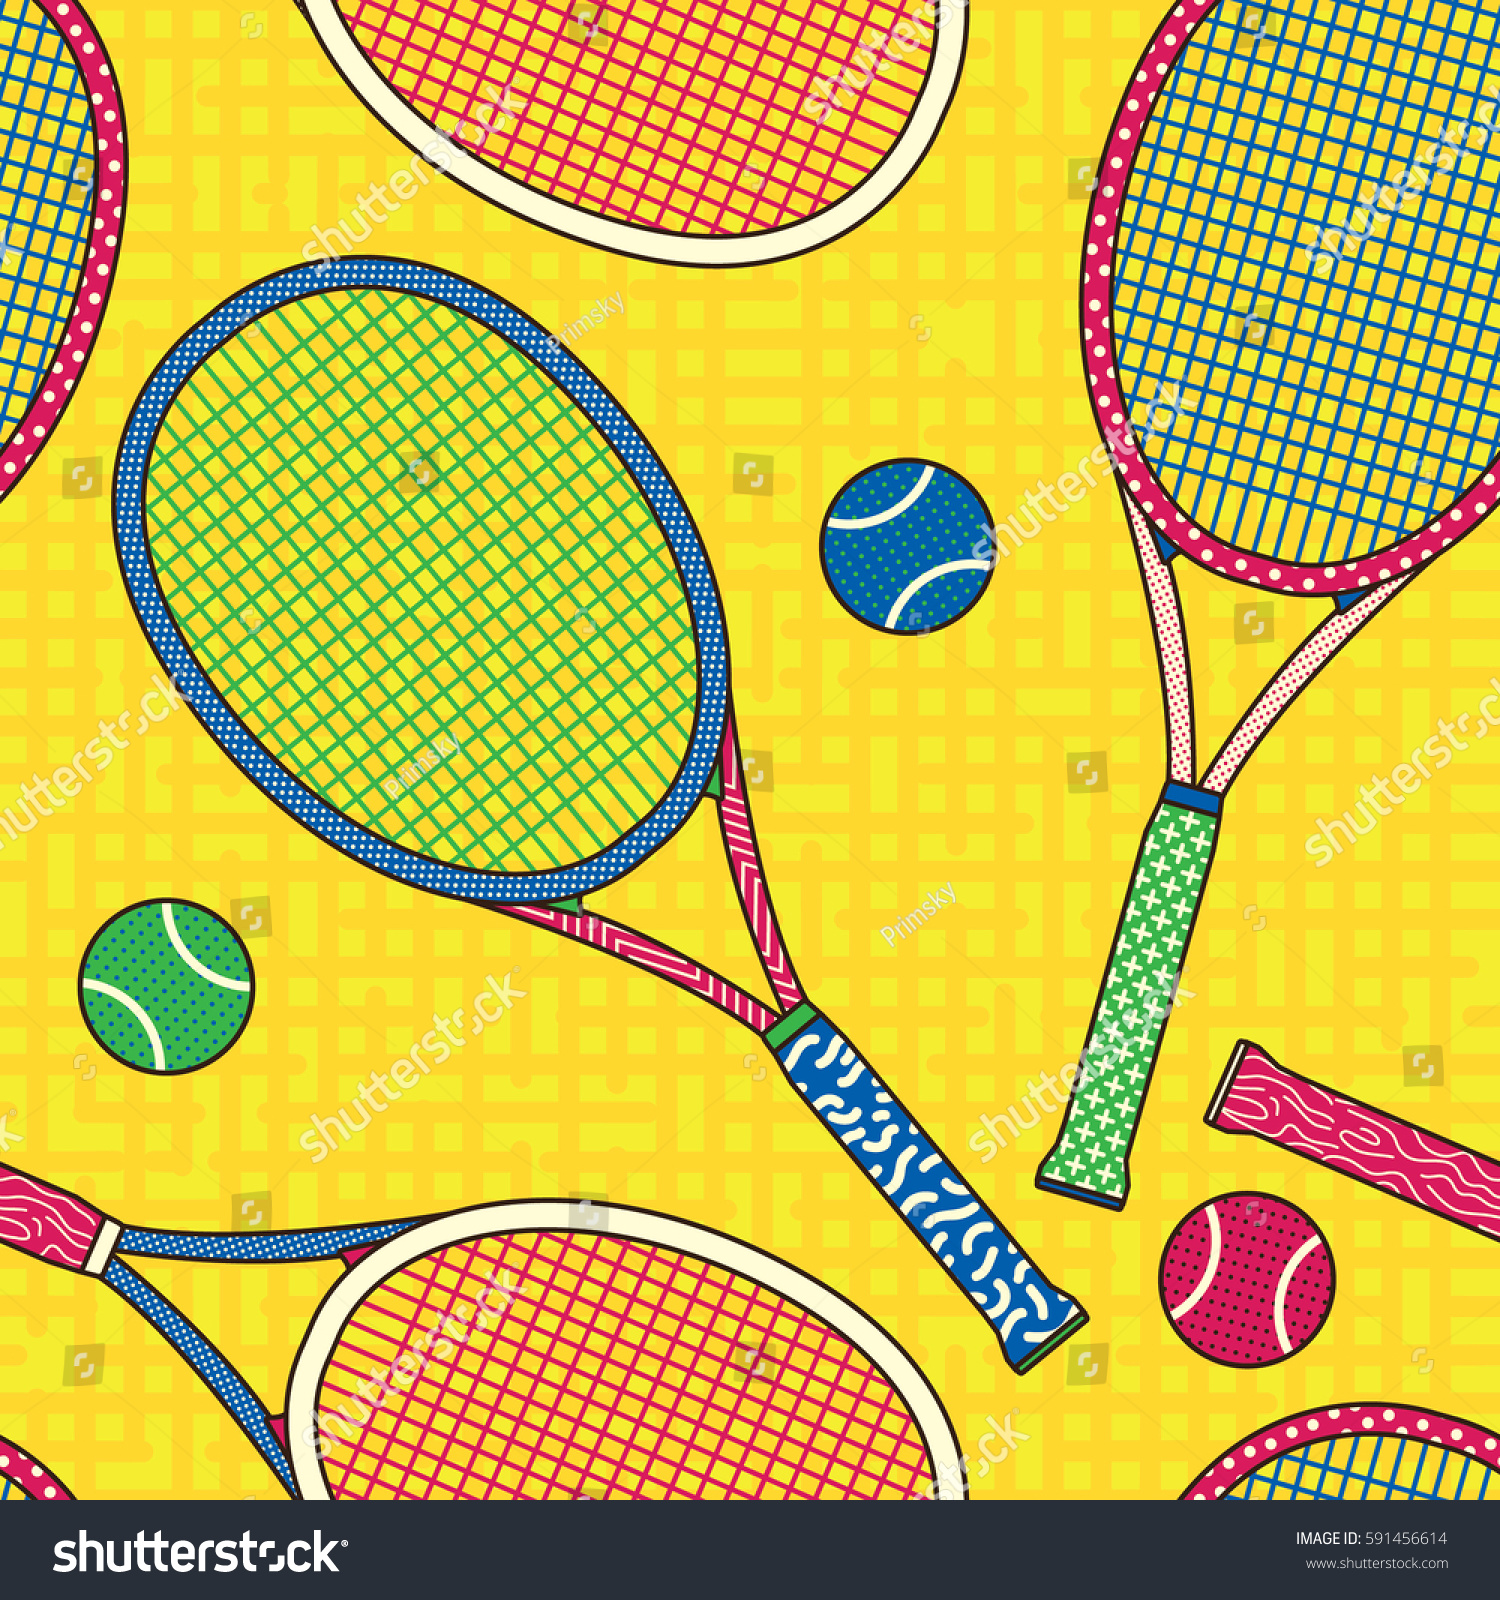 Colorful Racket And Tennis Ball Seamless Pattern Background Wallpaper